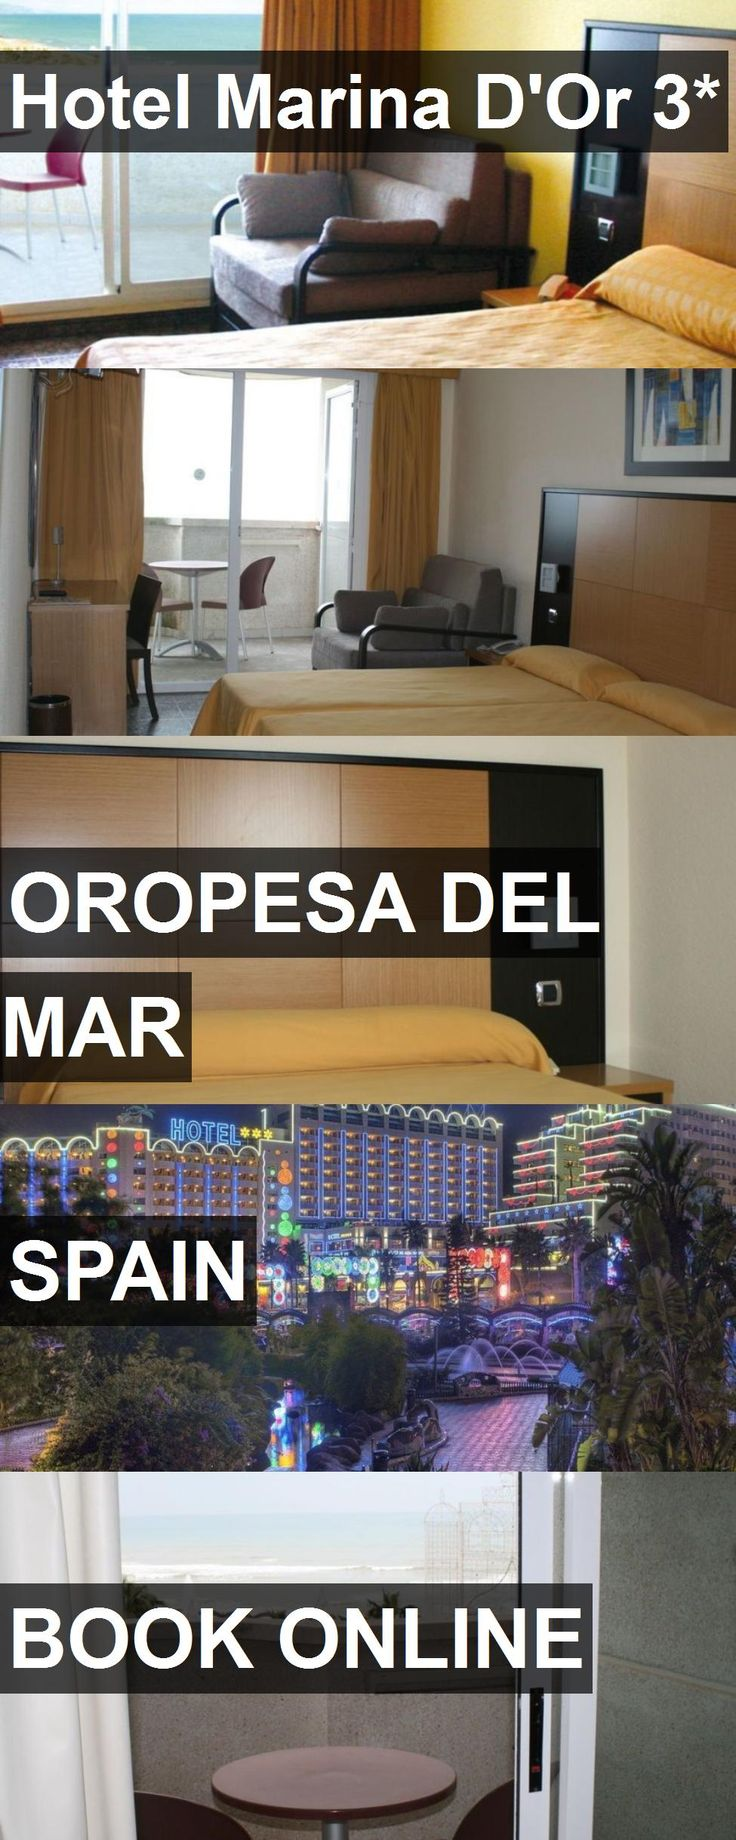 Hotel Marina D'Or 3* in Oropesa del Mar, Spain. For more information, photos, reviews and best prices please follow the link. #Spain #OropesadelMar #travel #vacation #hotel